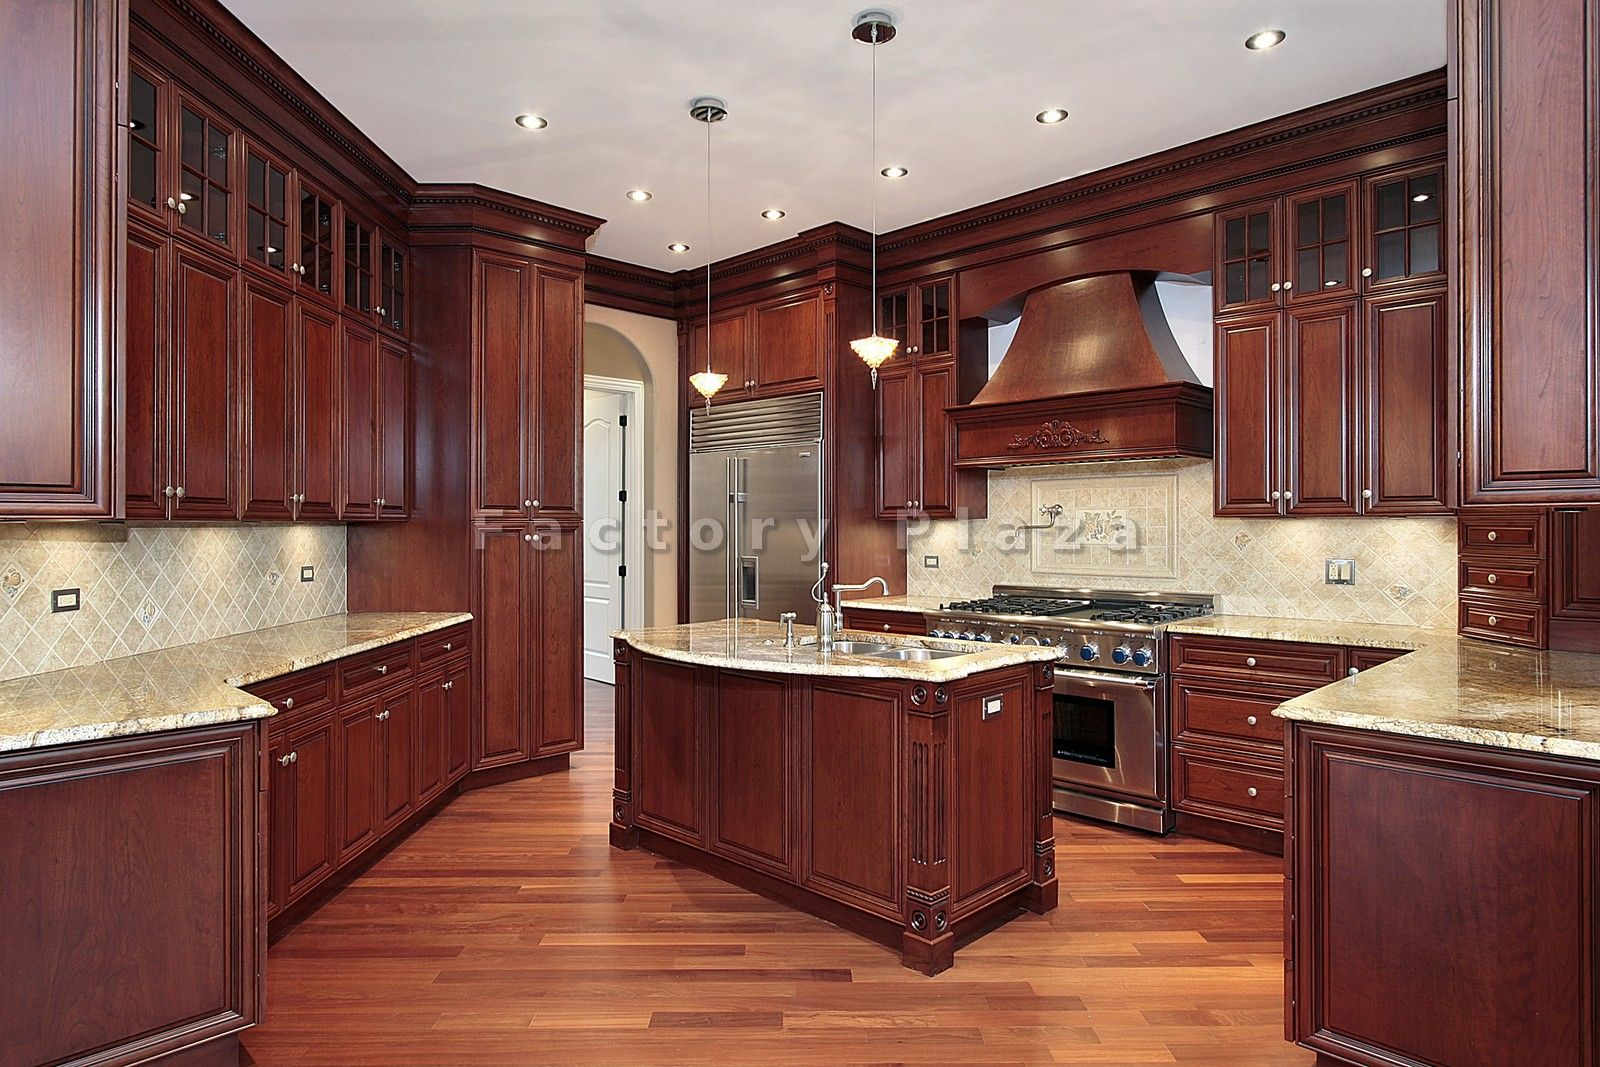 Traditional Dark Woodcherry Kitchen Cabinets #26 Kitchendesign Delectable Cherry Kitchen Design Decorating Design